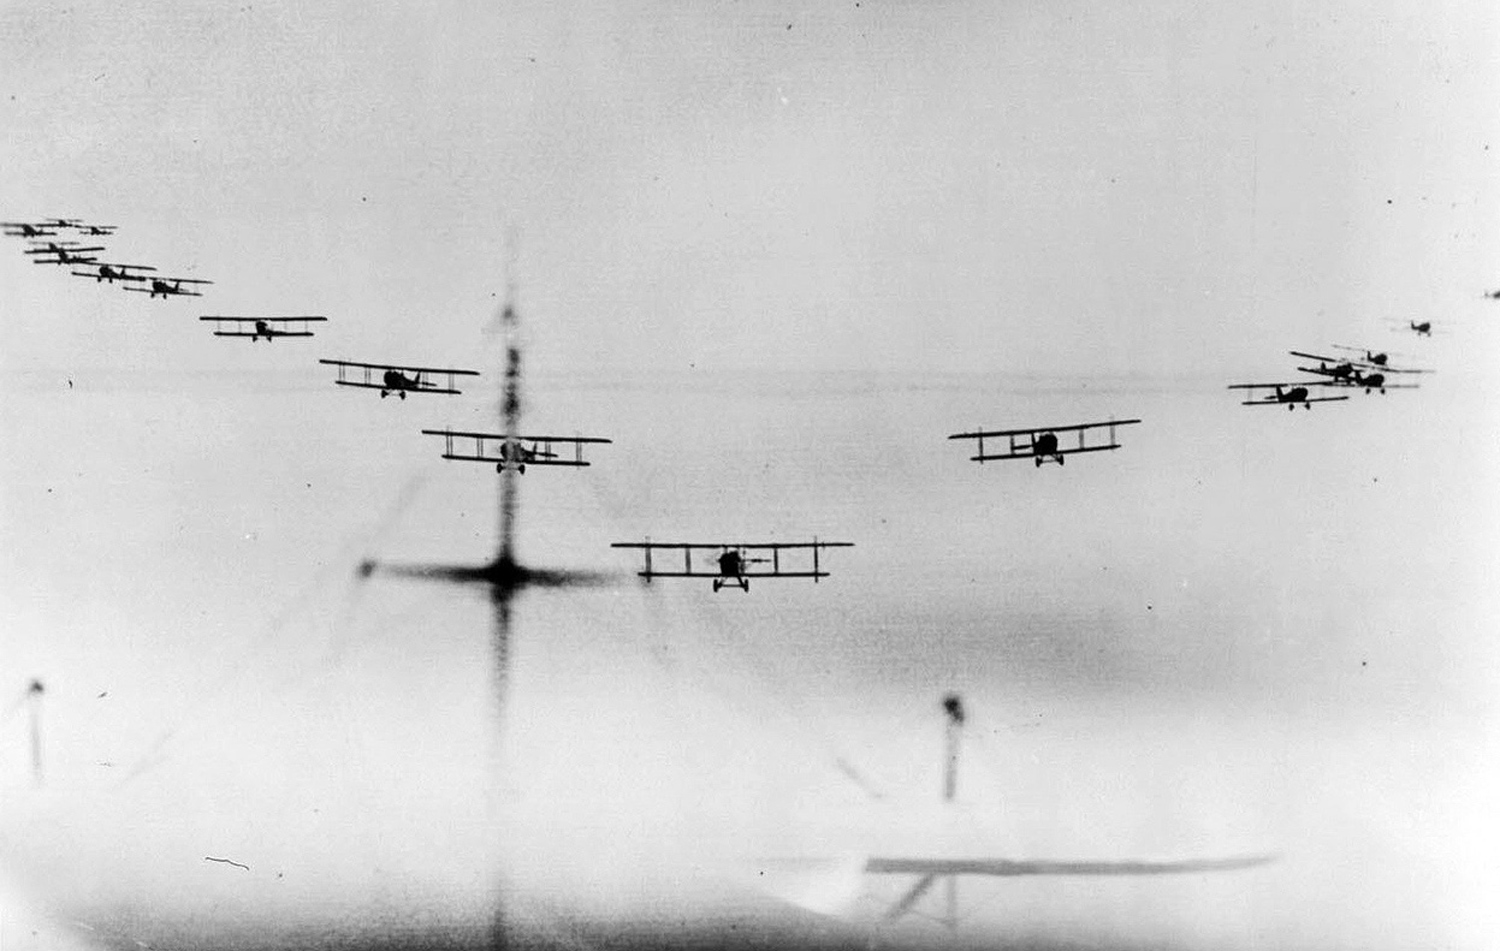 Biplanes WWI via The Atlantic https://www.theatlantic.com/photo/2014/04/world-war-i-in-photos-introduction/507185/